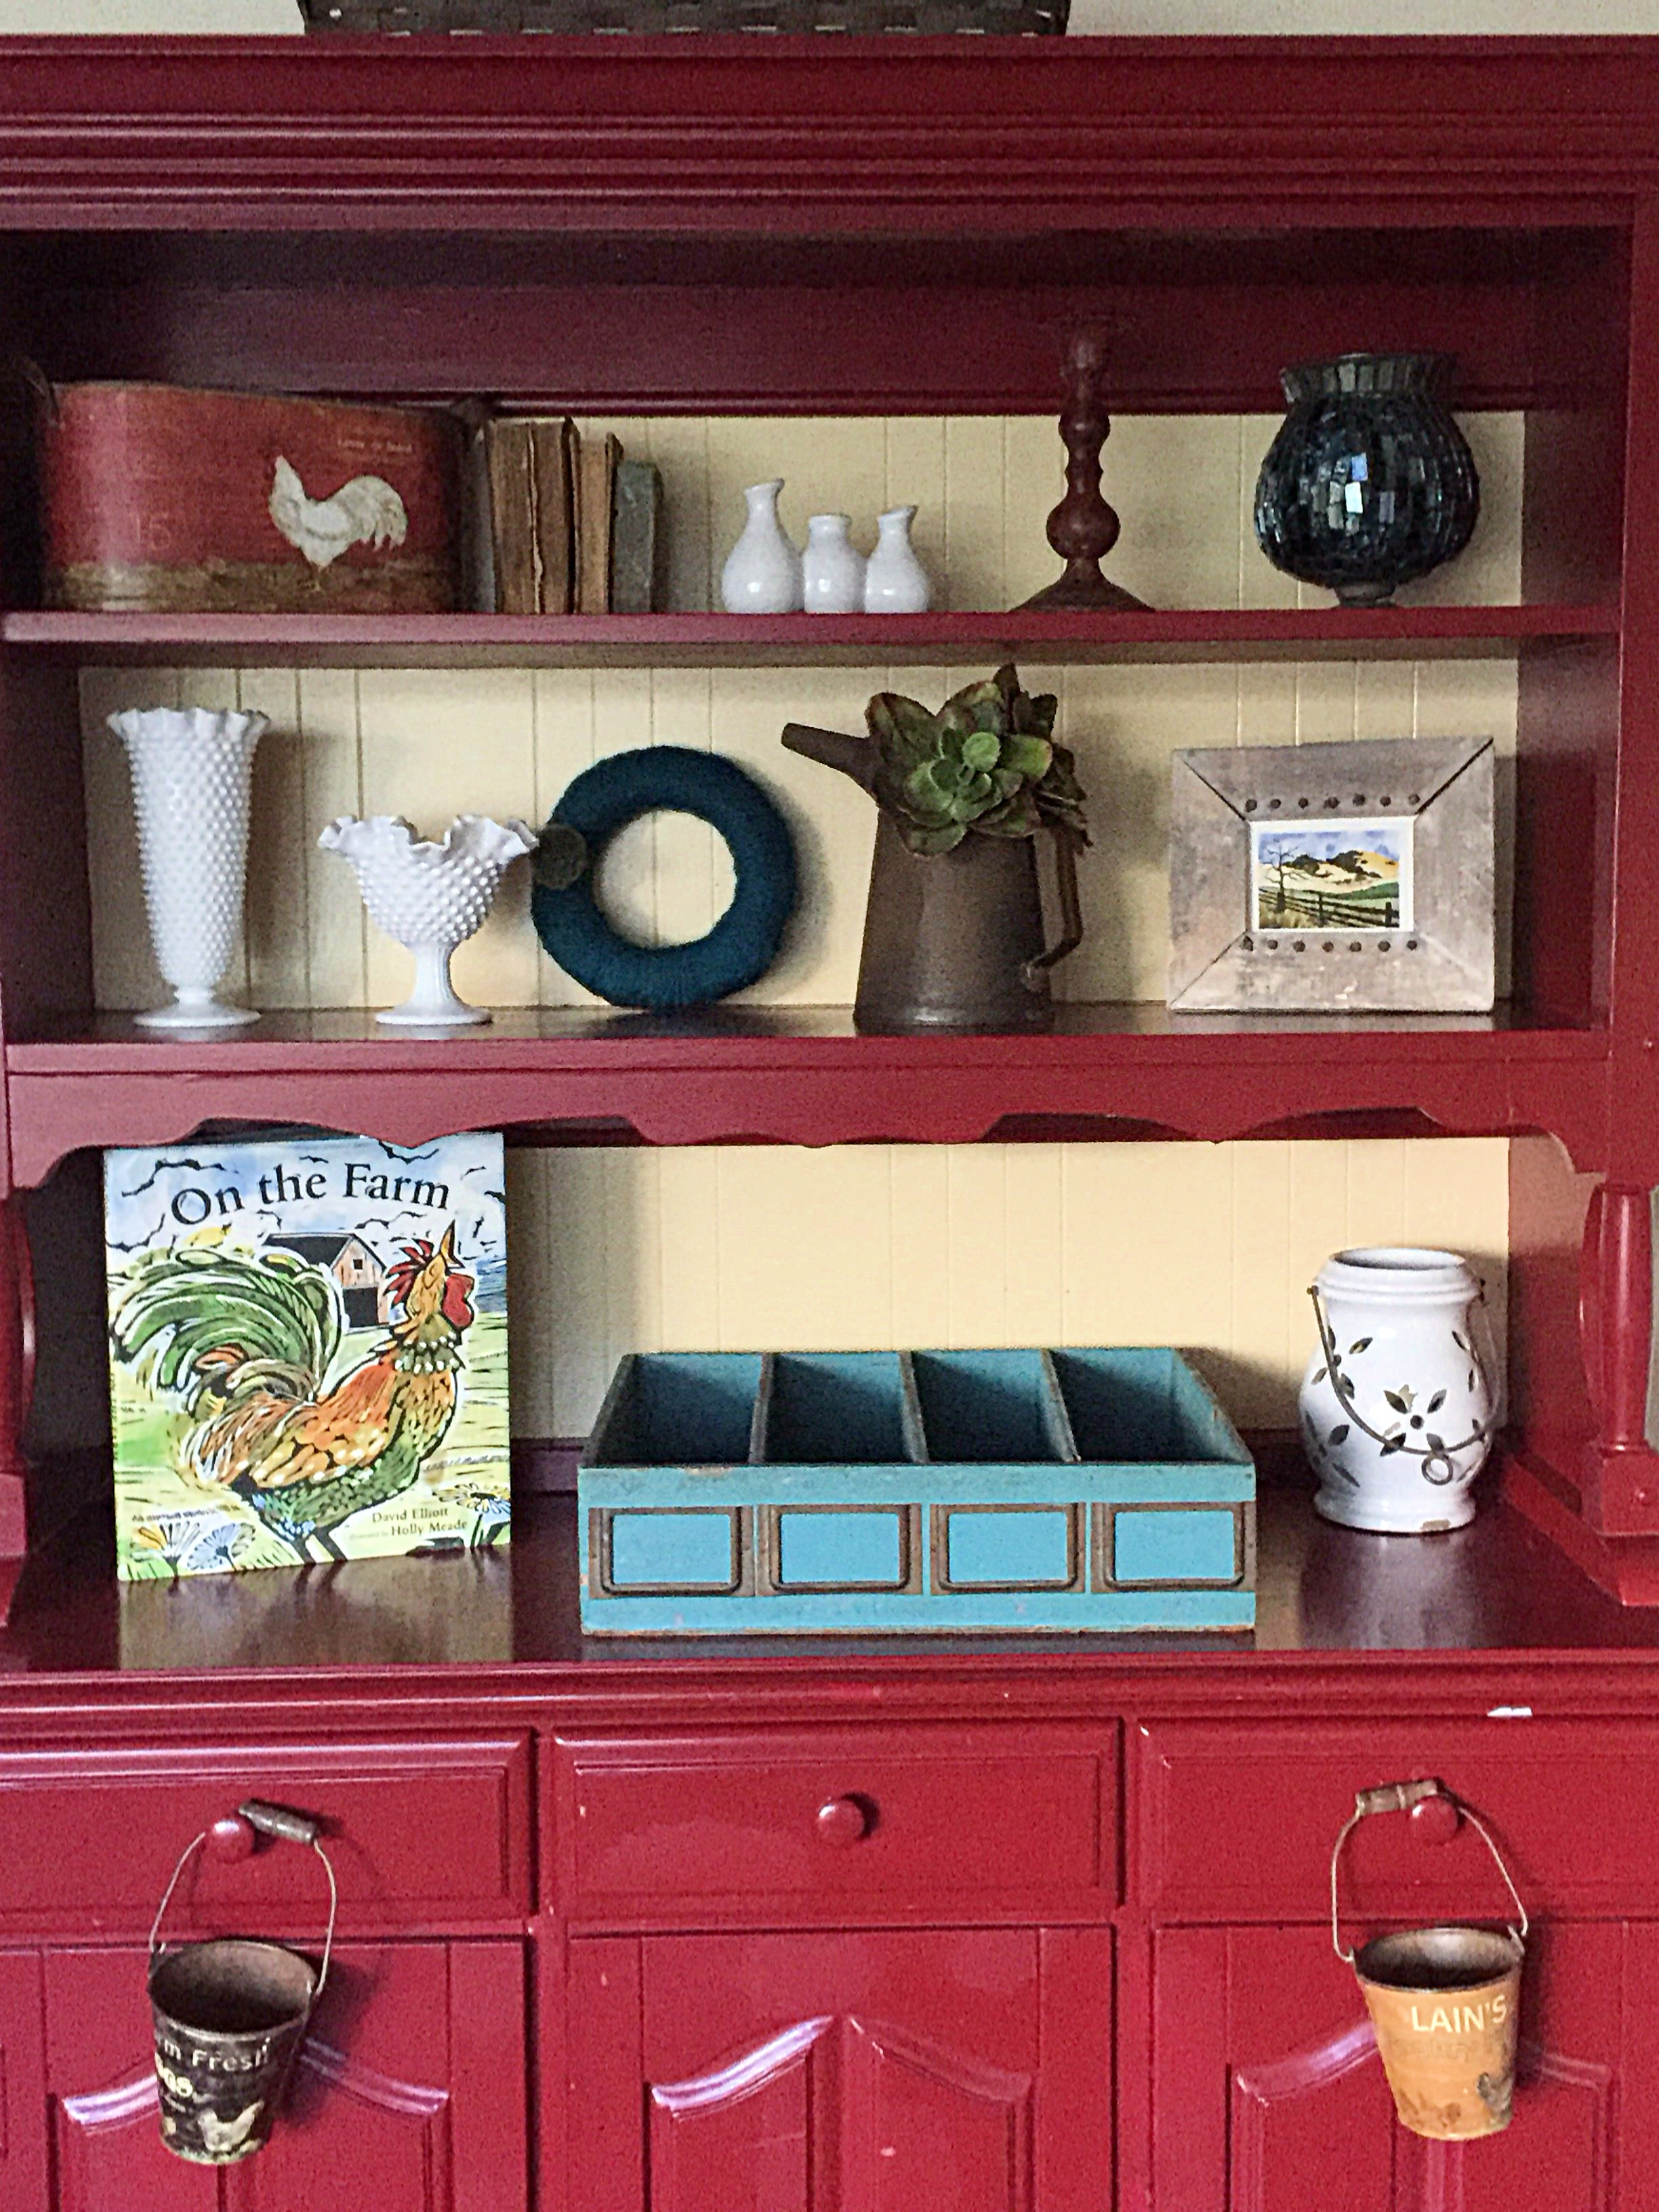 Every item here was chosen with inspiration from the rooster on wood print.